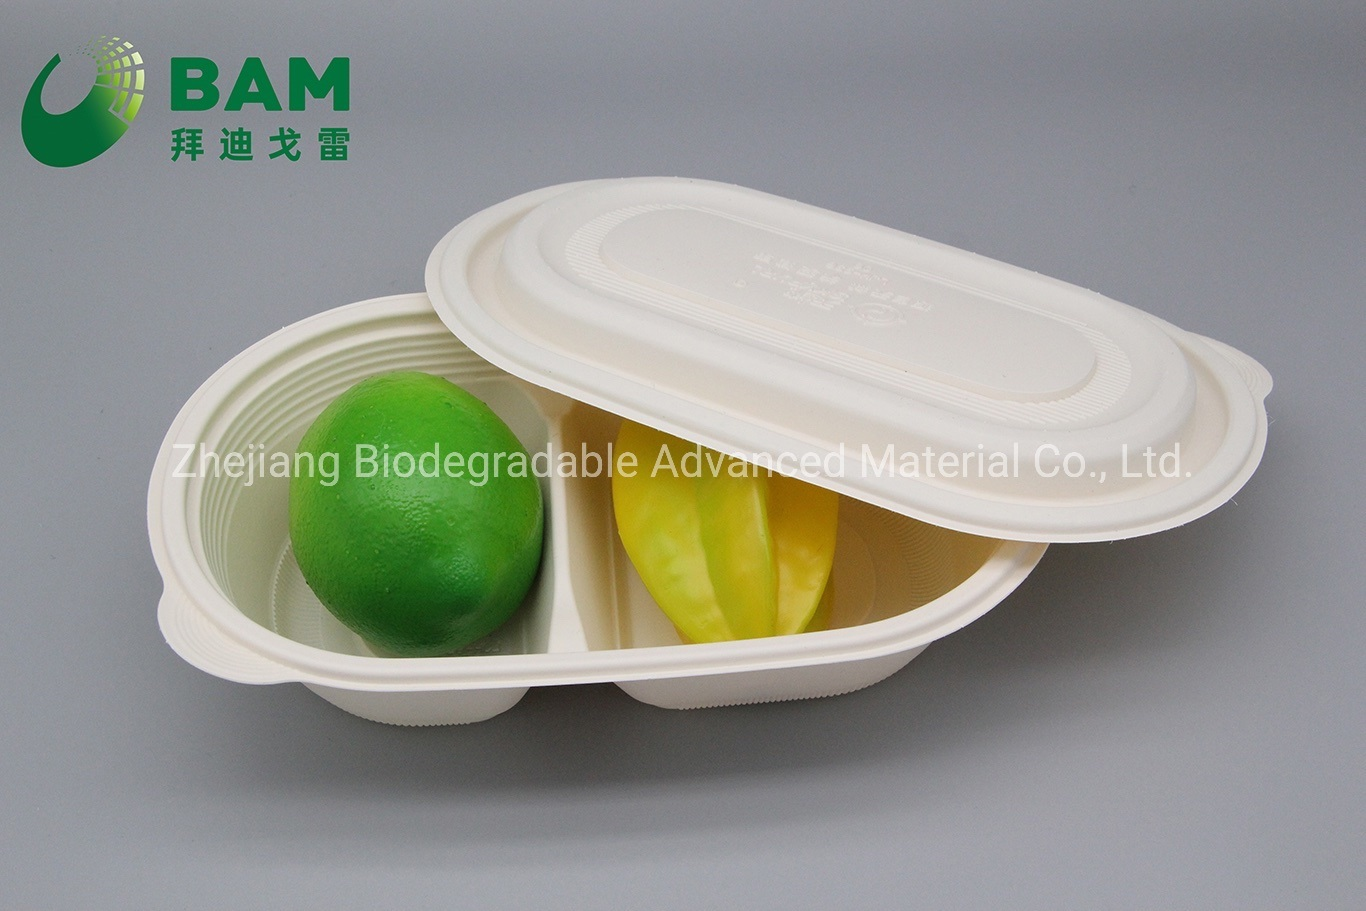 China Fully Biodegradable 2 Compostable Sugarcane Snack Store Takeaway Food Plastic Packaging Containers For Dun Dessert China Disposable Tableware And Recycle Tableware Price